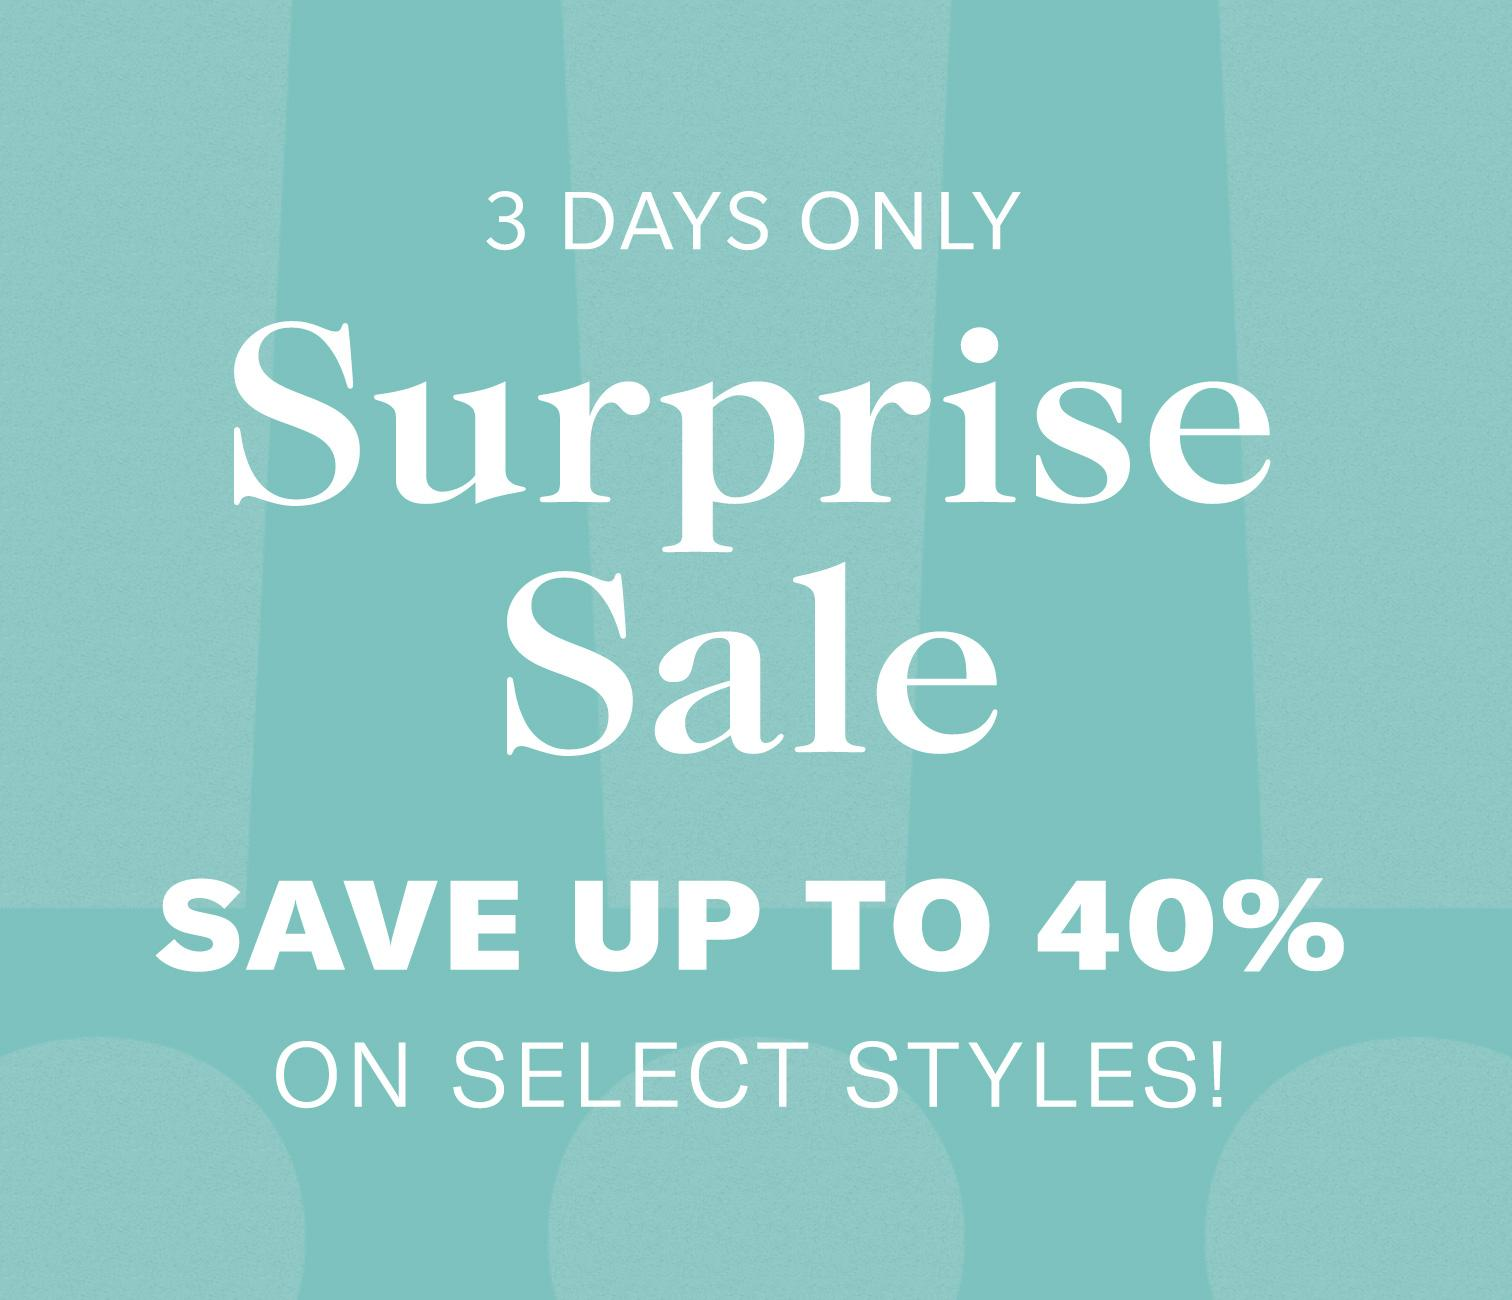 shopbop surprise sale save 40%